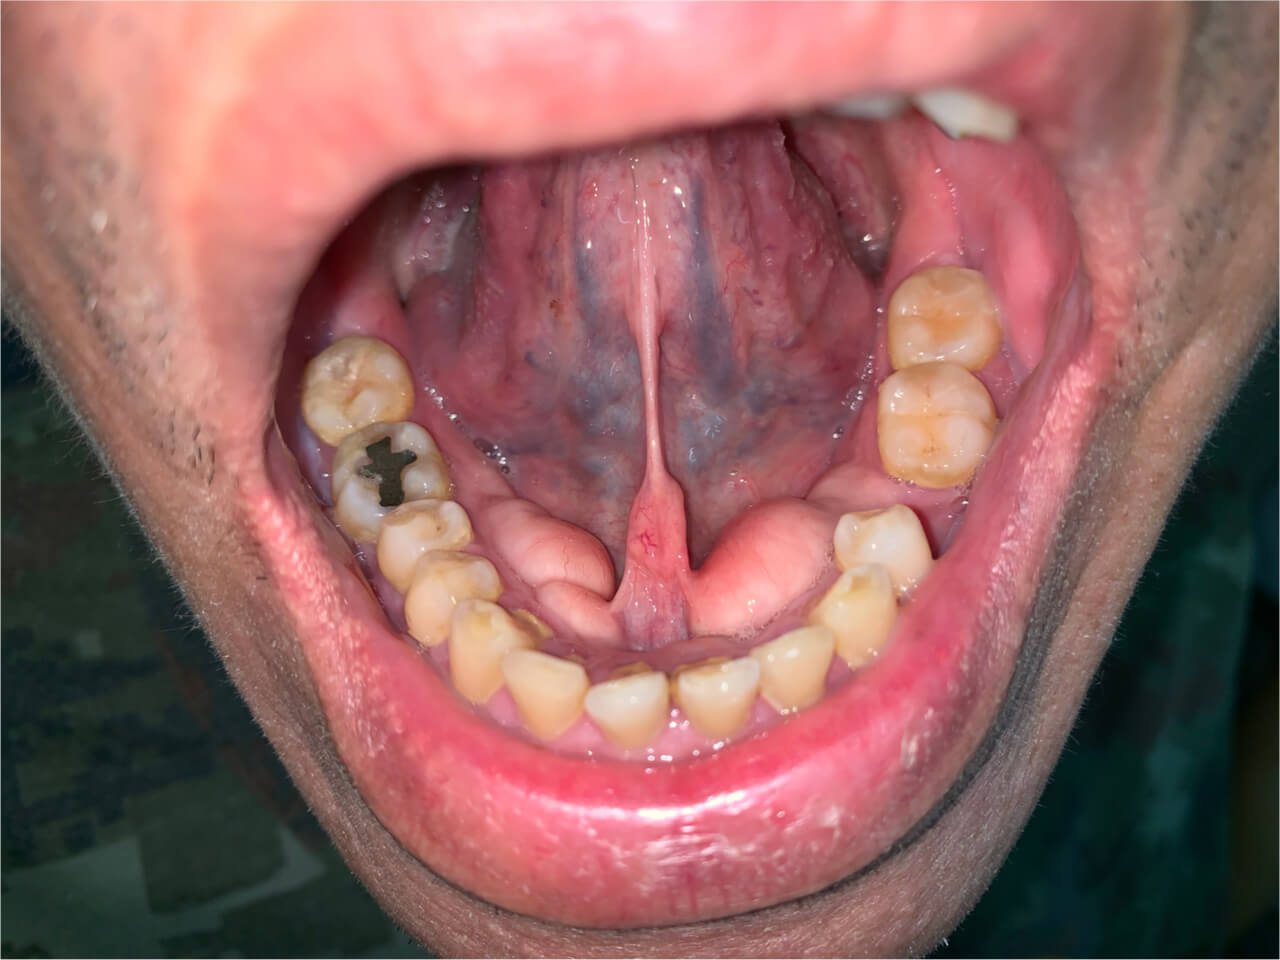 gingival hyperplasia symptoms